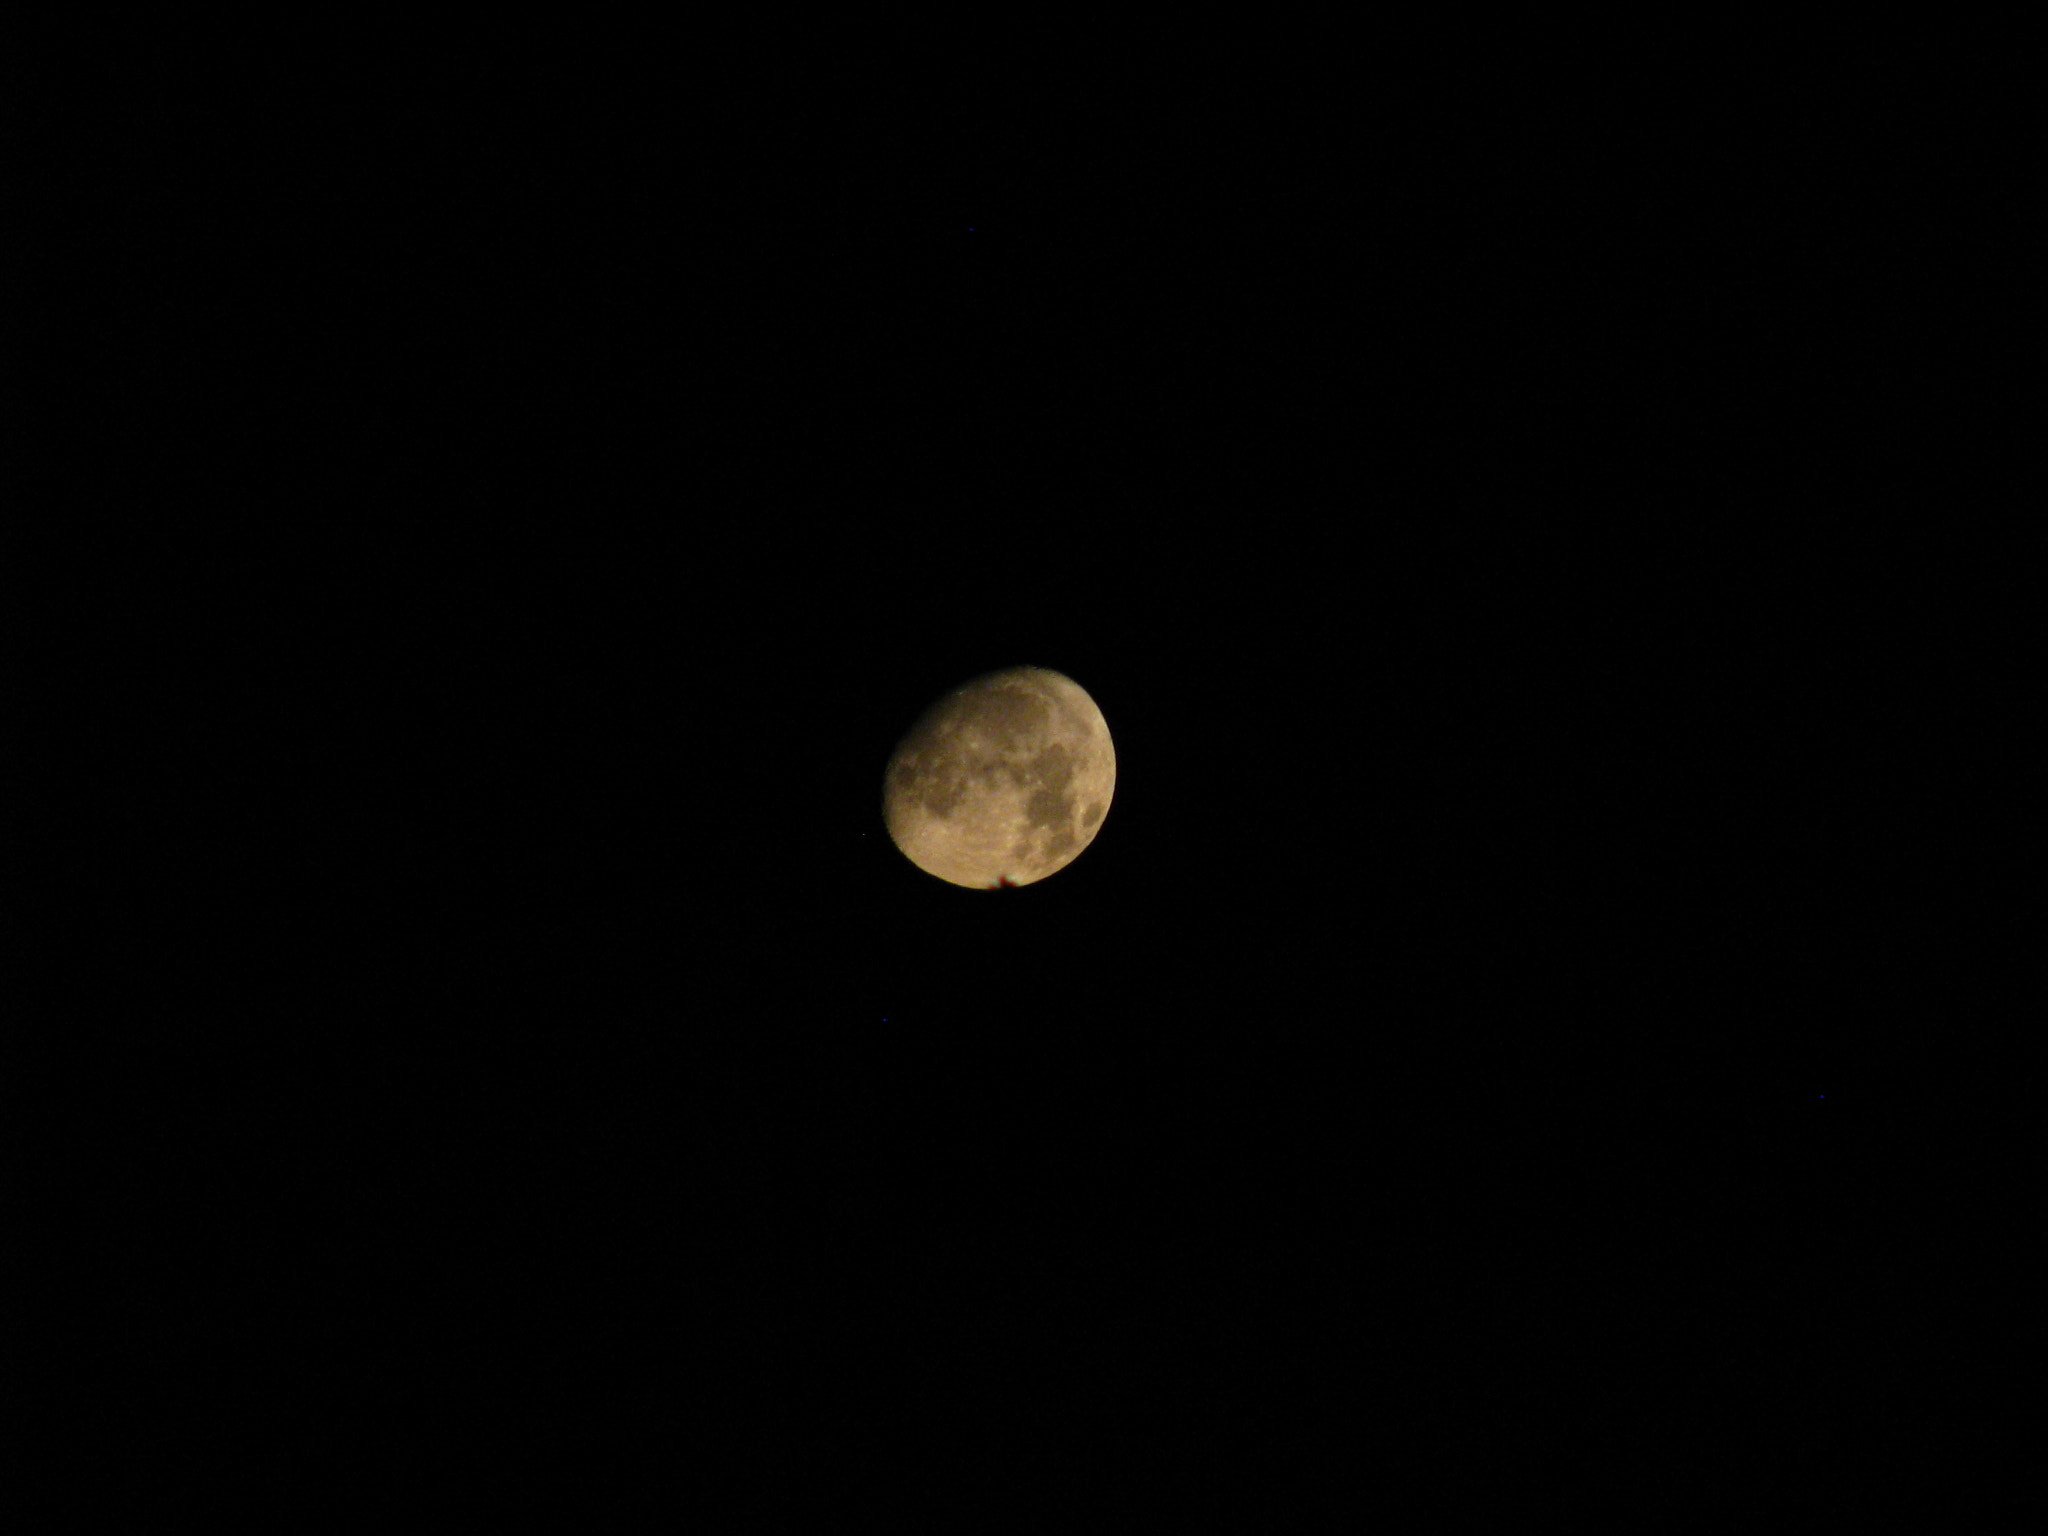 Photograph Moon by Luis Aviles on 500px